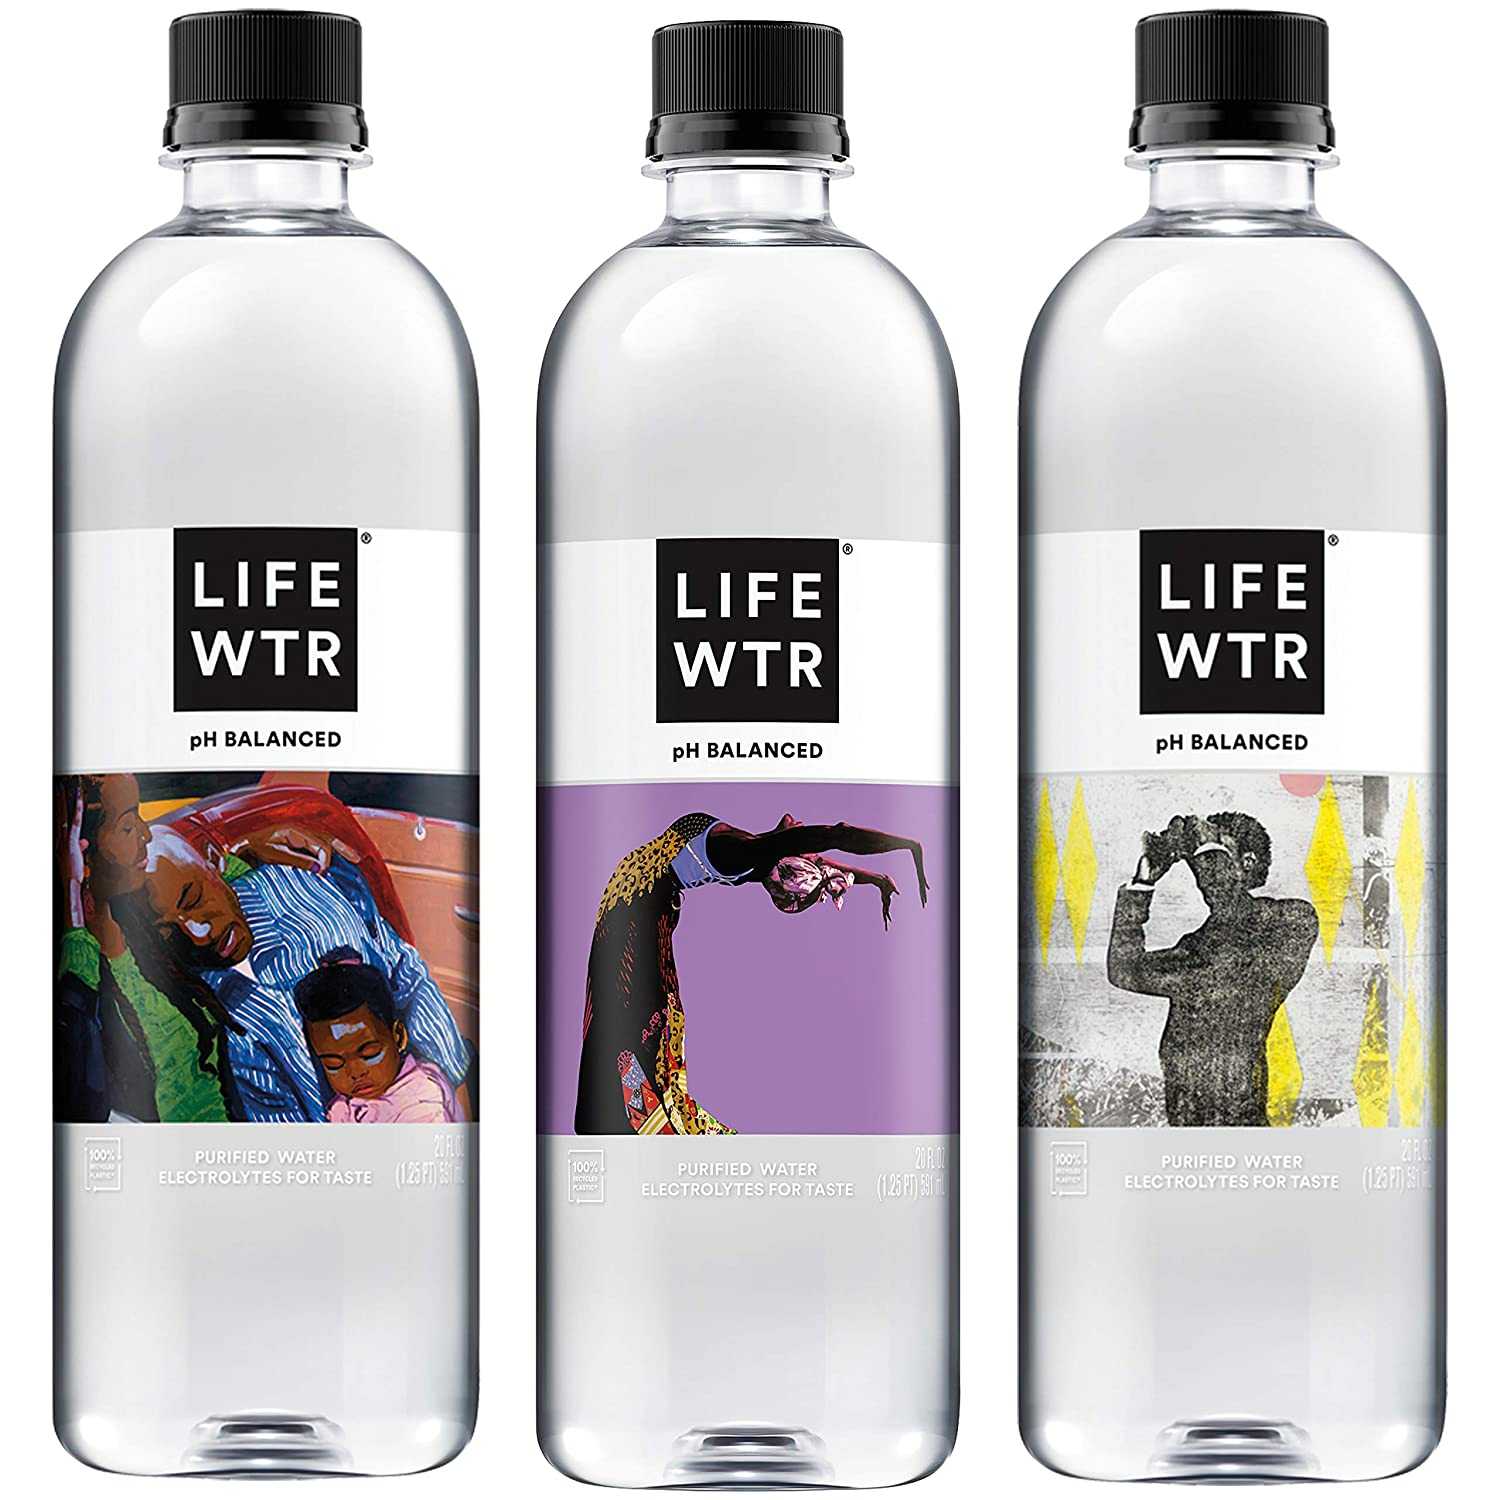 LIFEWTR Premium Purified Water, pH Balanced with Electrolytes for Taste, 20oz Bottles (20 Pack) (Packaging May Vary)